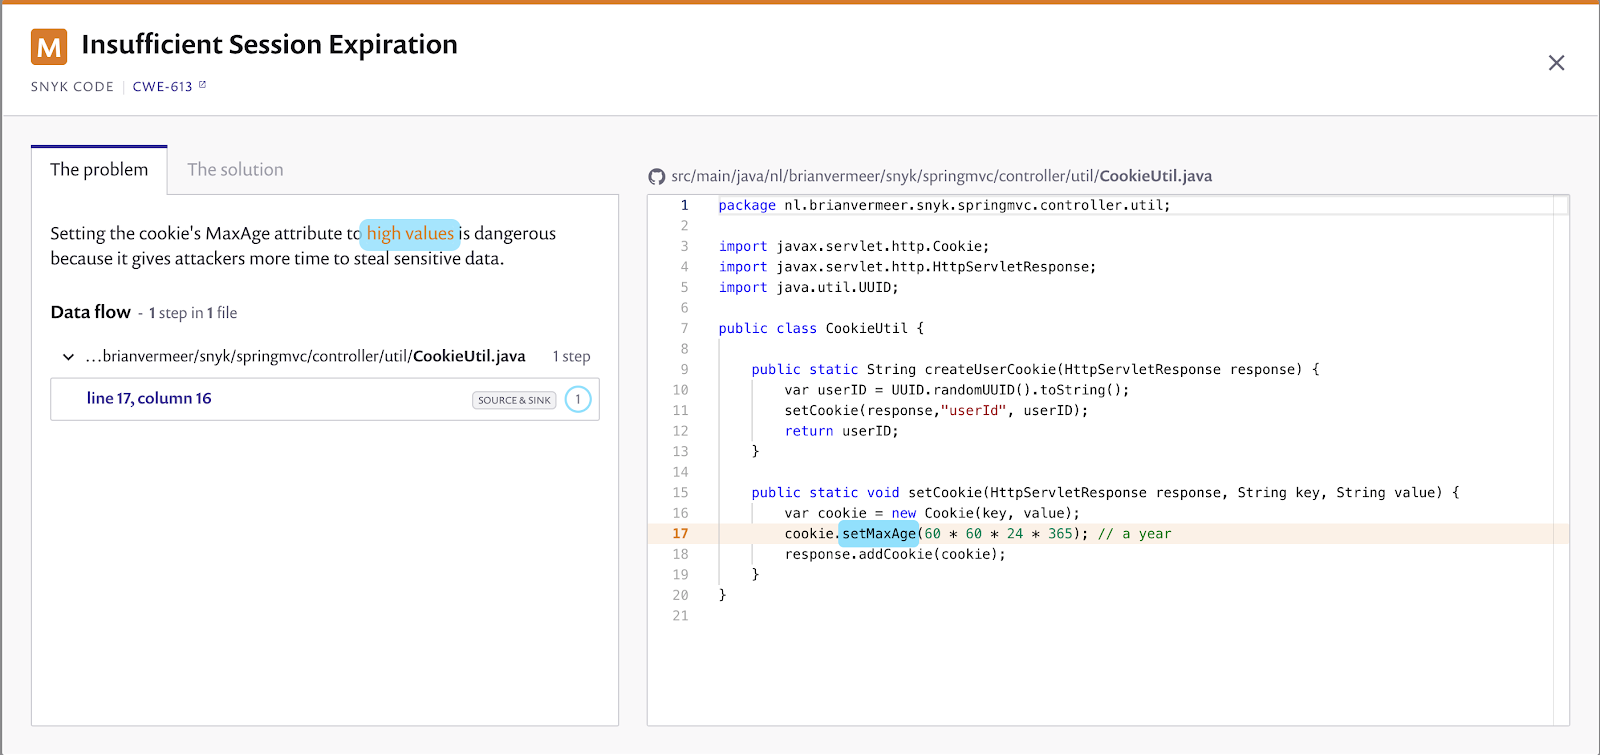 Issuficient session expiration found by Snyk Code